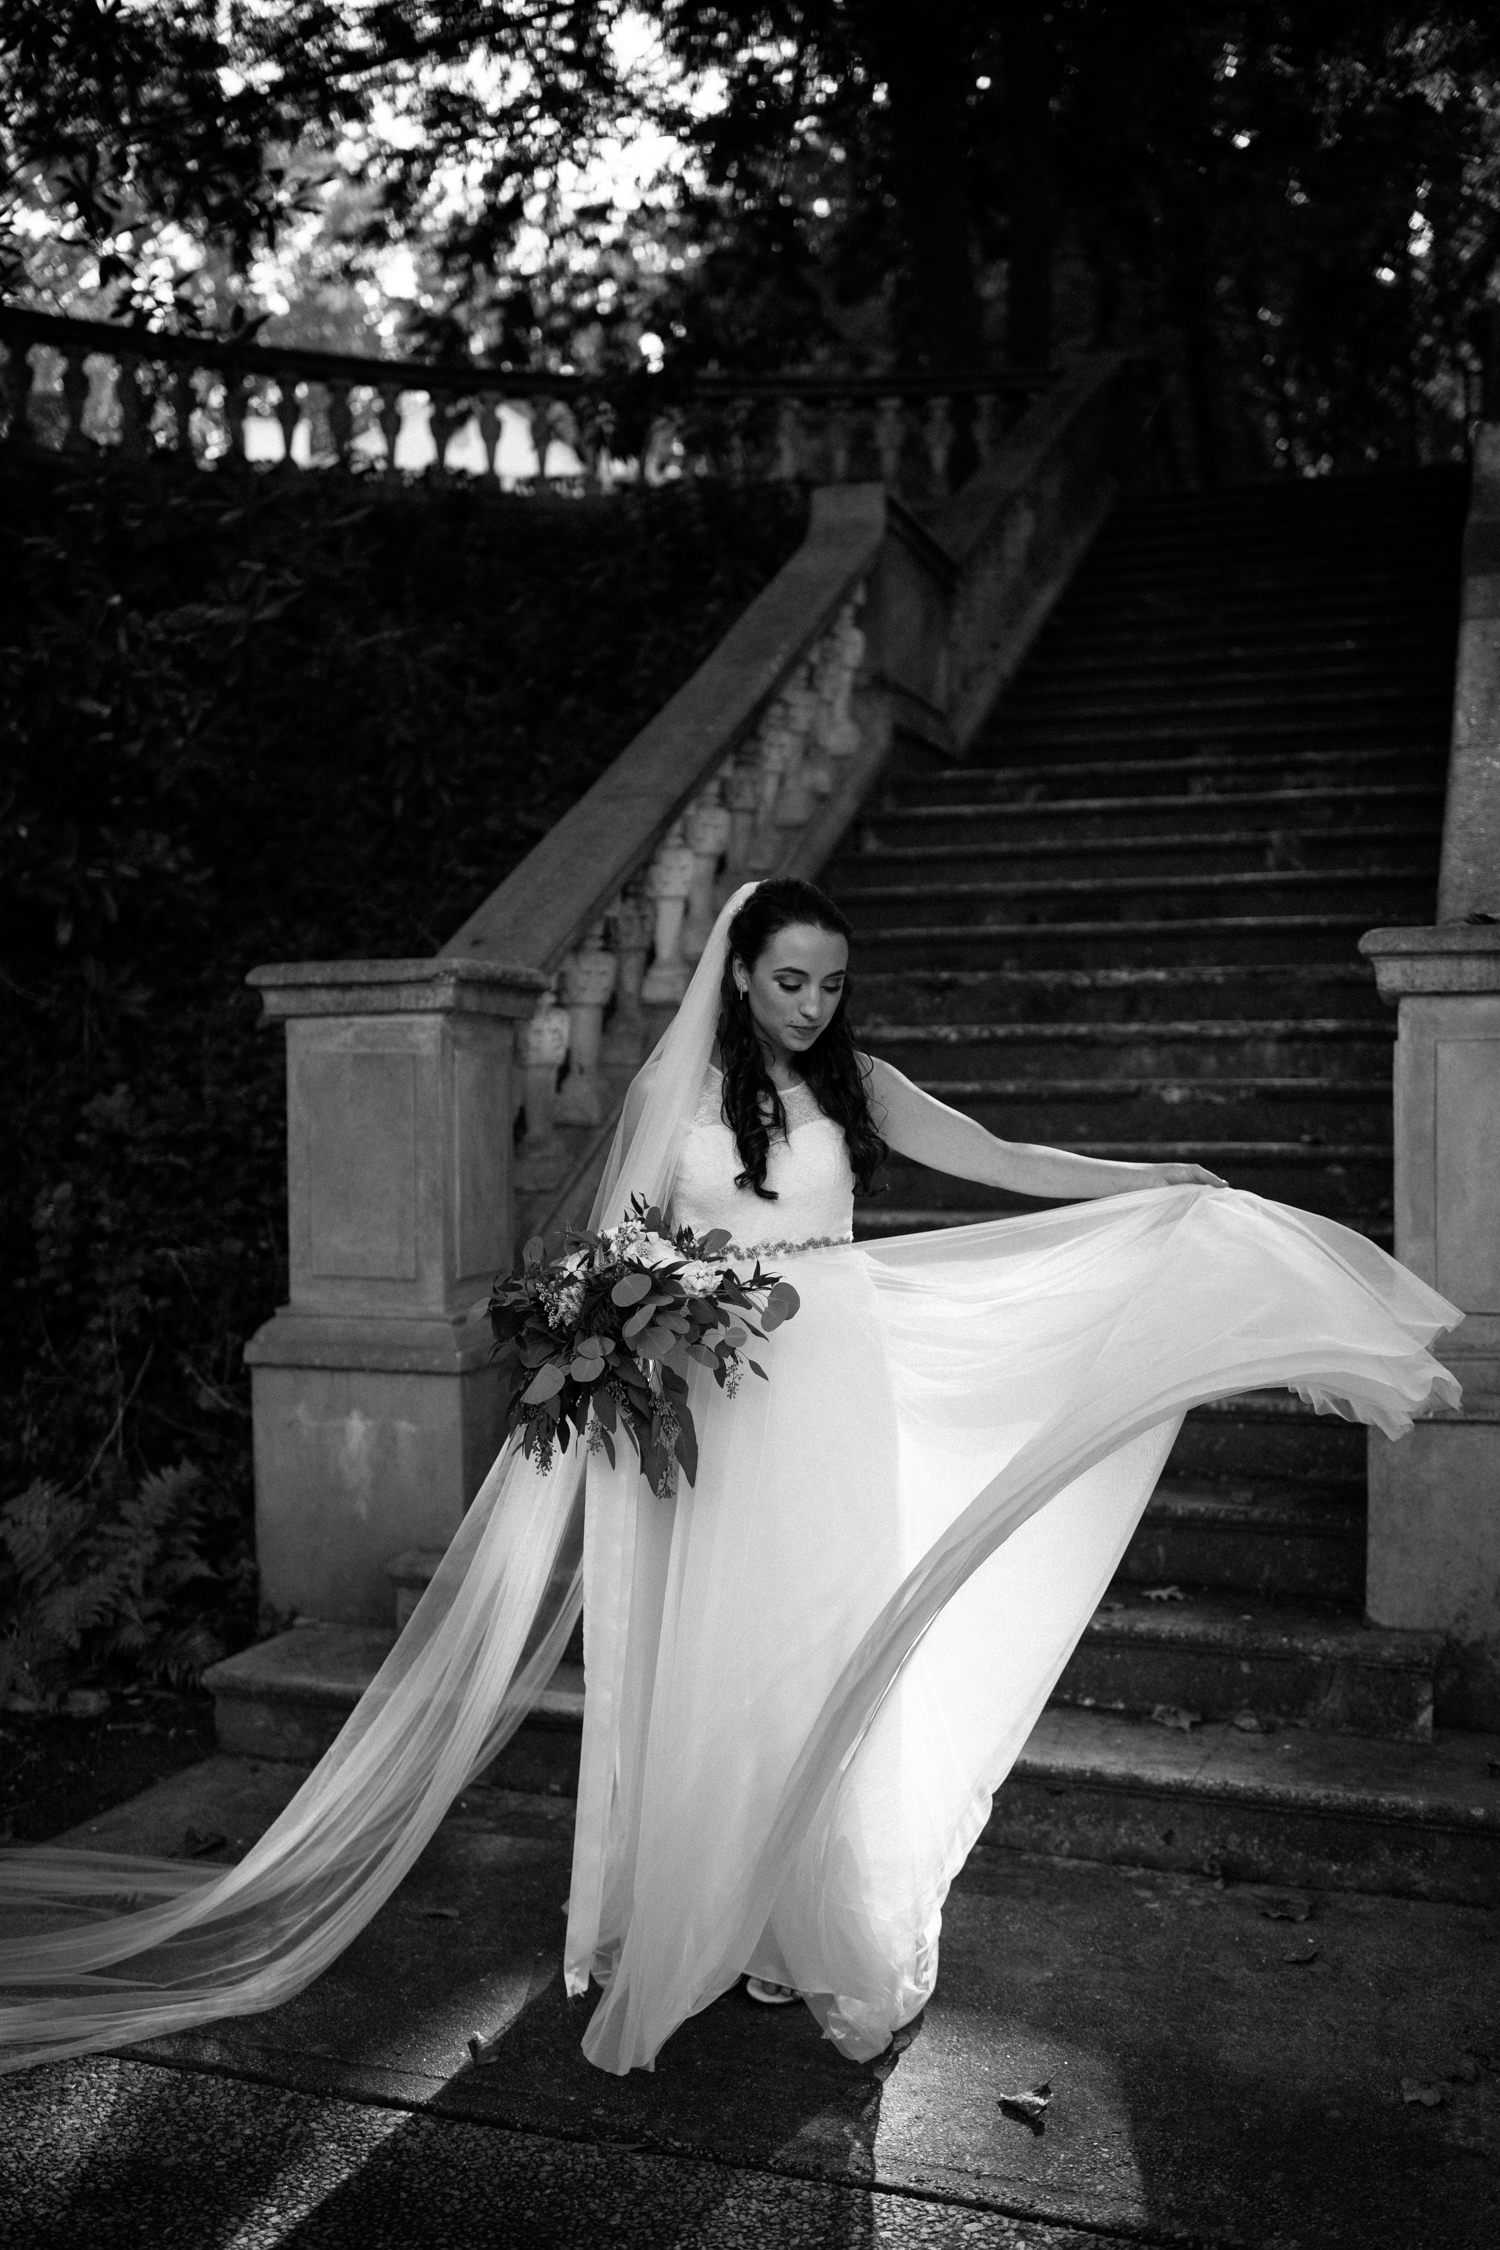 atlanta-nontraditional-wedding-photographer-87